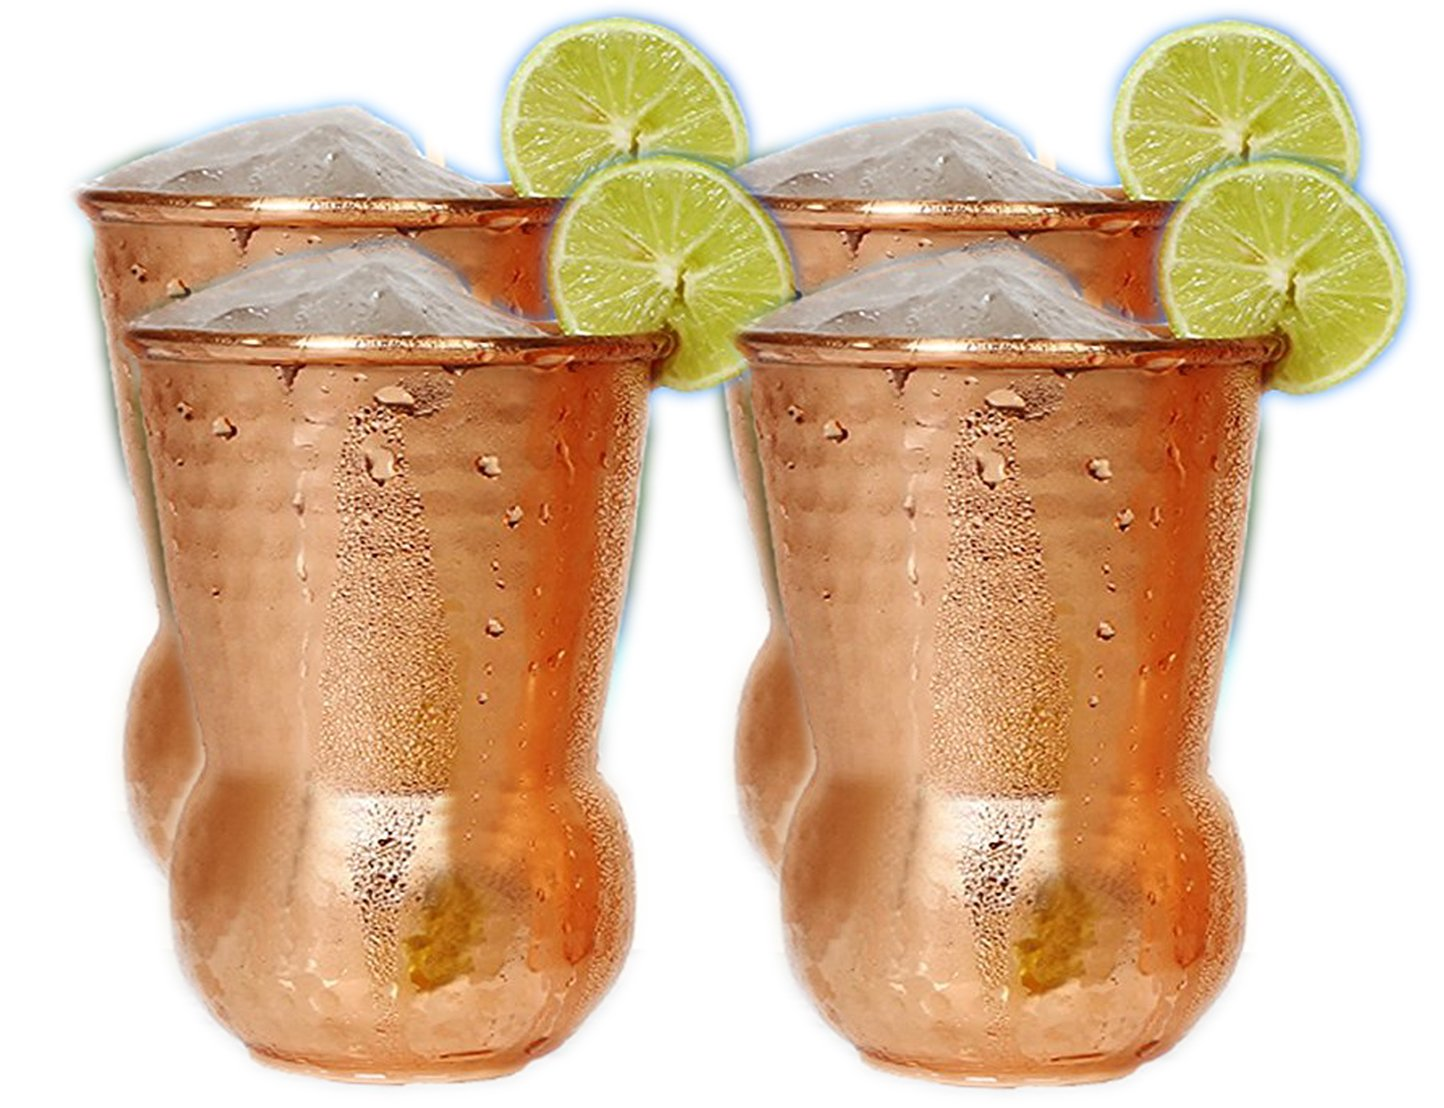 Hand Hammered Pure Copper Tumbler Moscow Mule Mugs Copper Tumbler Cups pure copper glass for mule cocktail beverages soft drinks Handcrafted Set of 4 by Parijat Handicraft